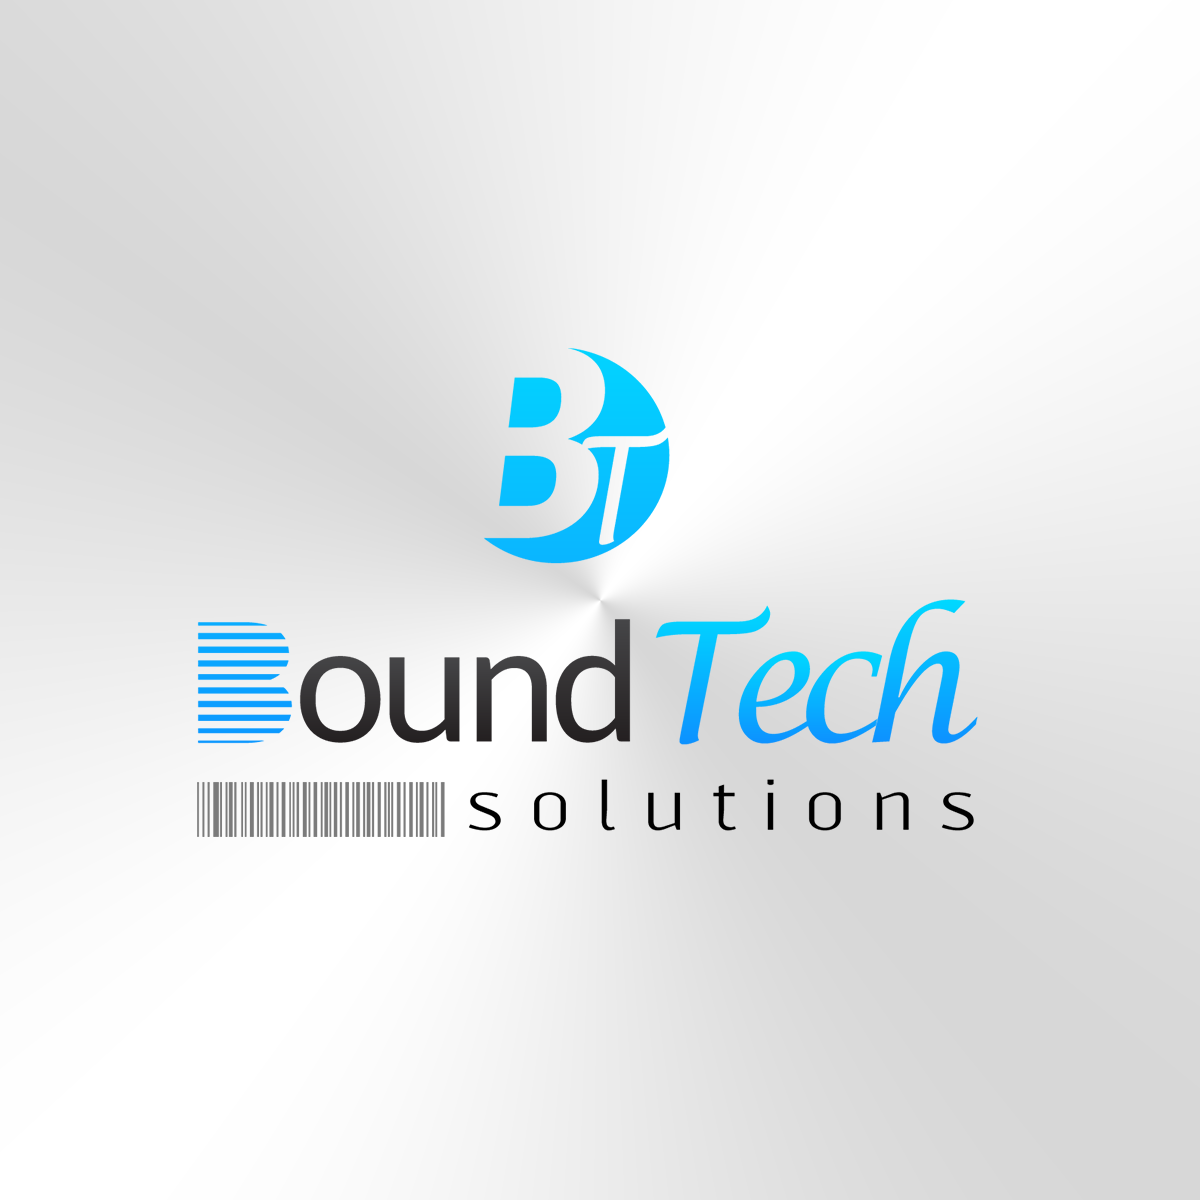 Bound Tech Solutions